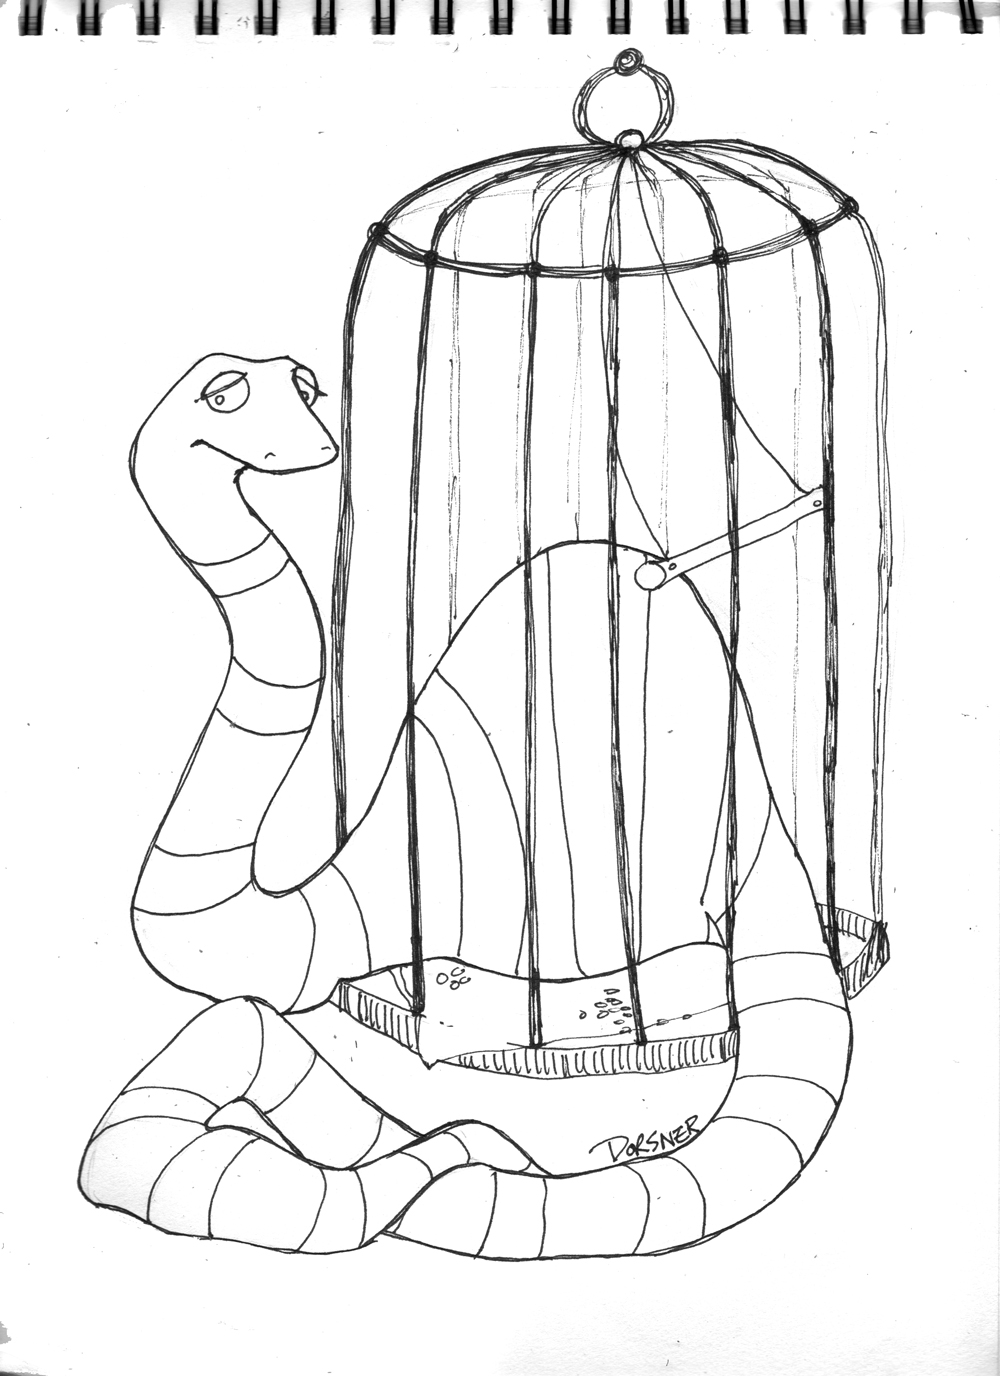 Printable Shape Coloring Pages additionally 2009 02 01 archive also Atlasti as well Science Far Side as well 2009 06 01 archive. on lego data center